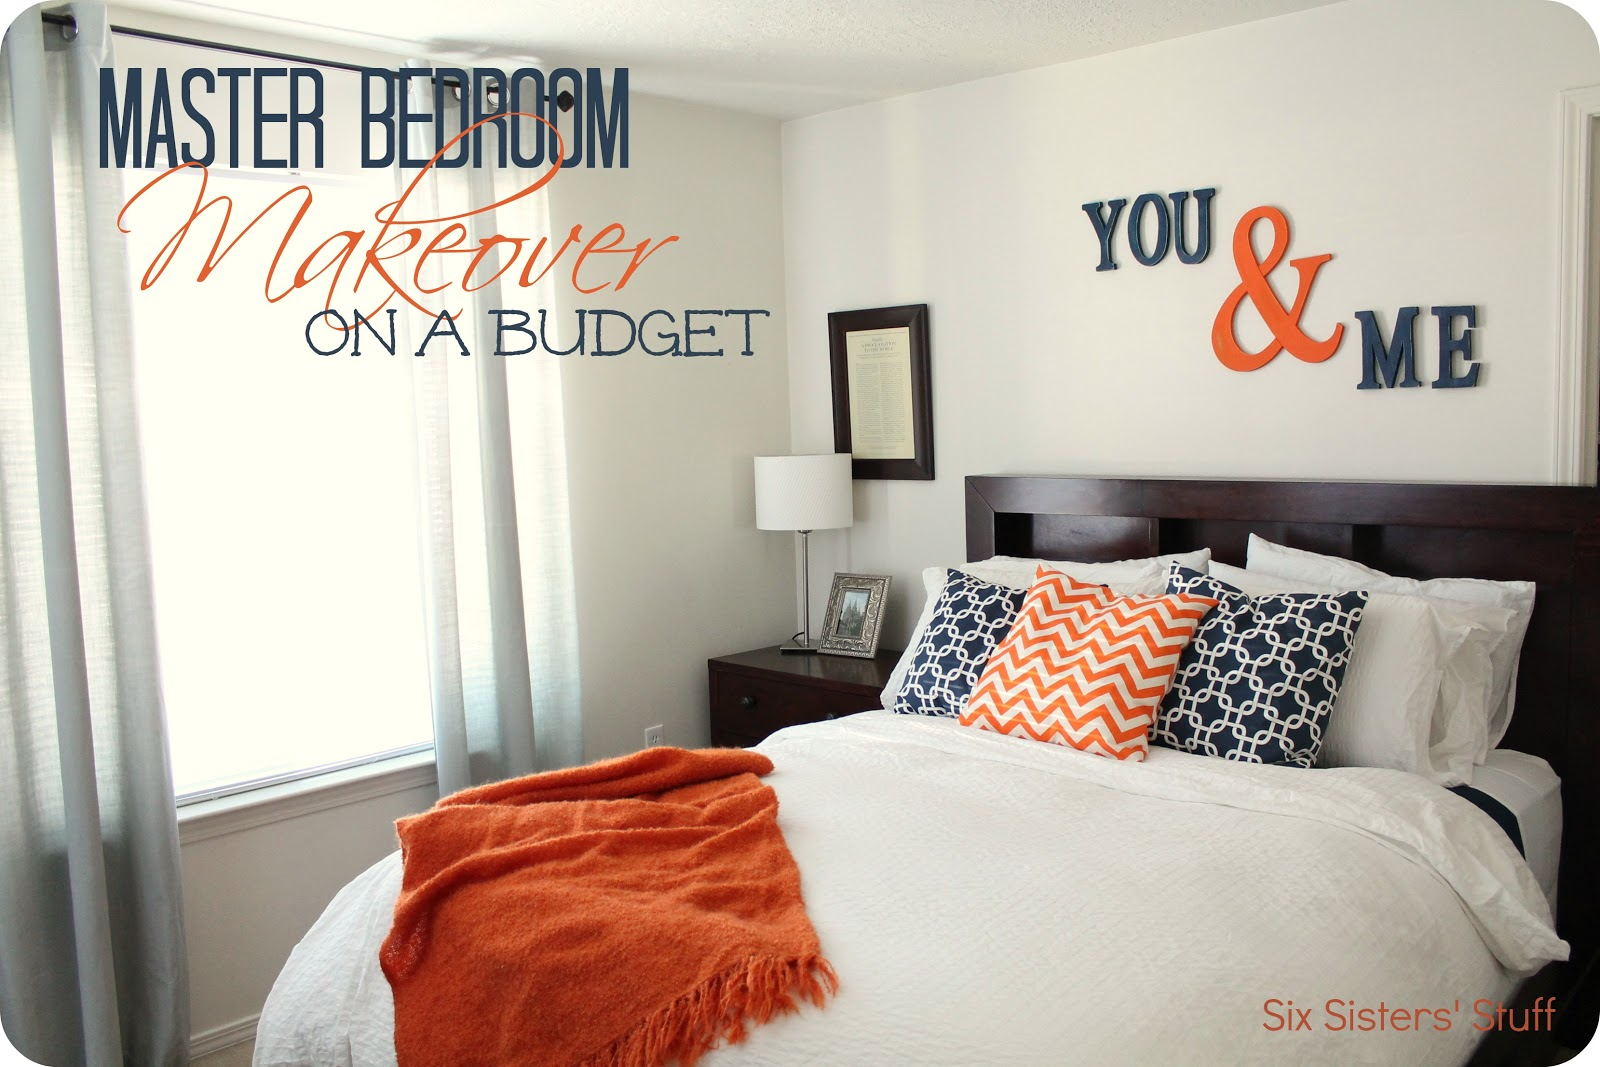 Master bedroom makeover on a budget six sisters 39 stuff for Room makeover